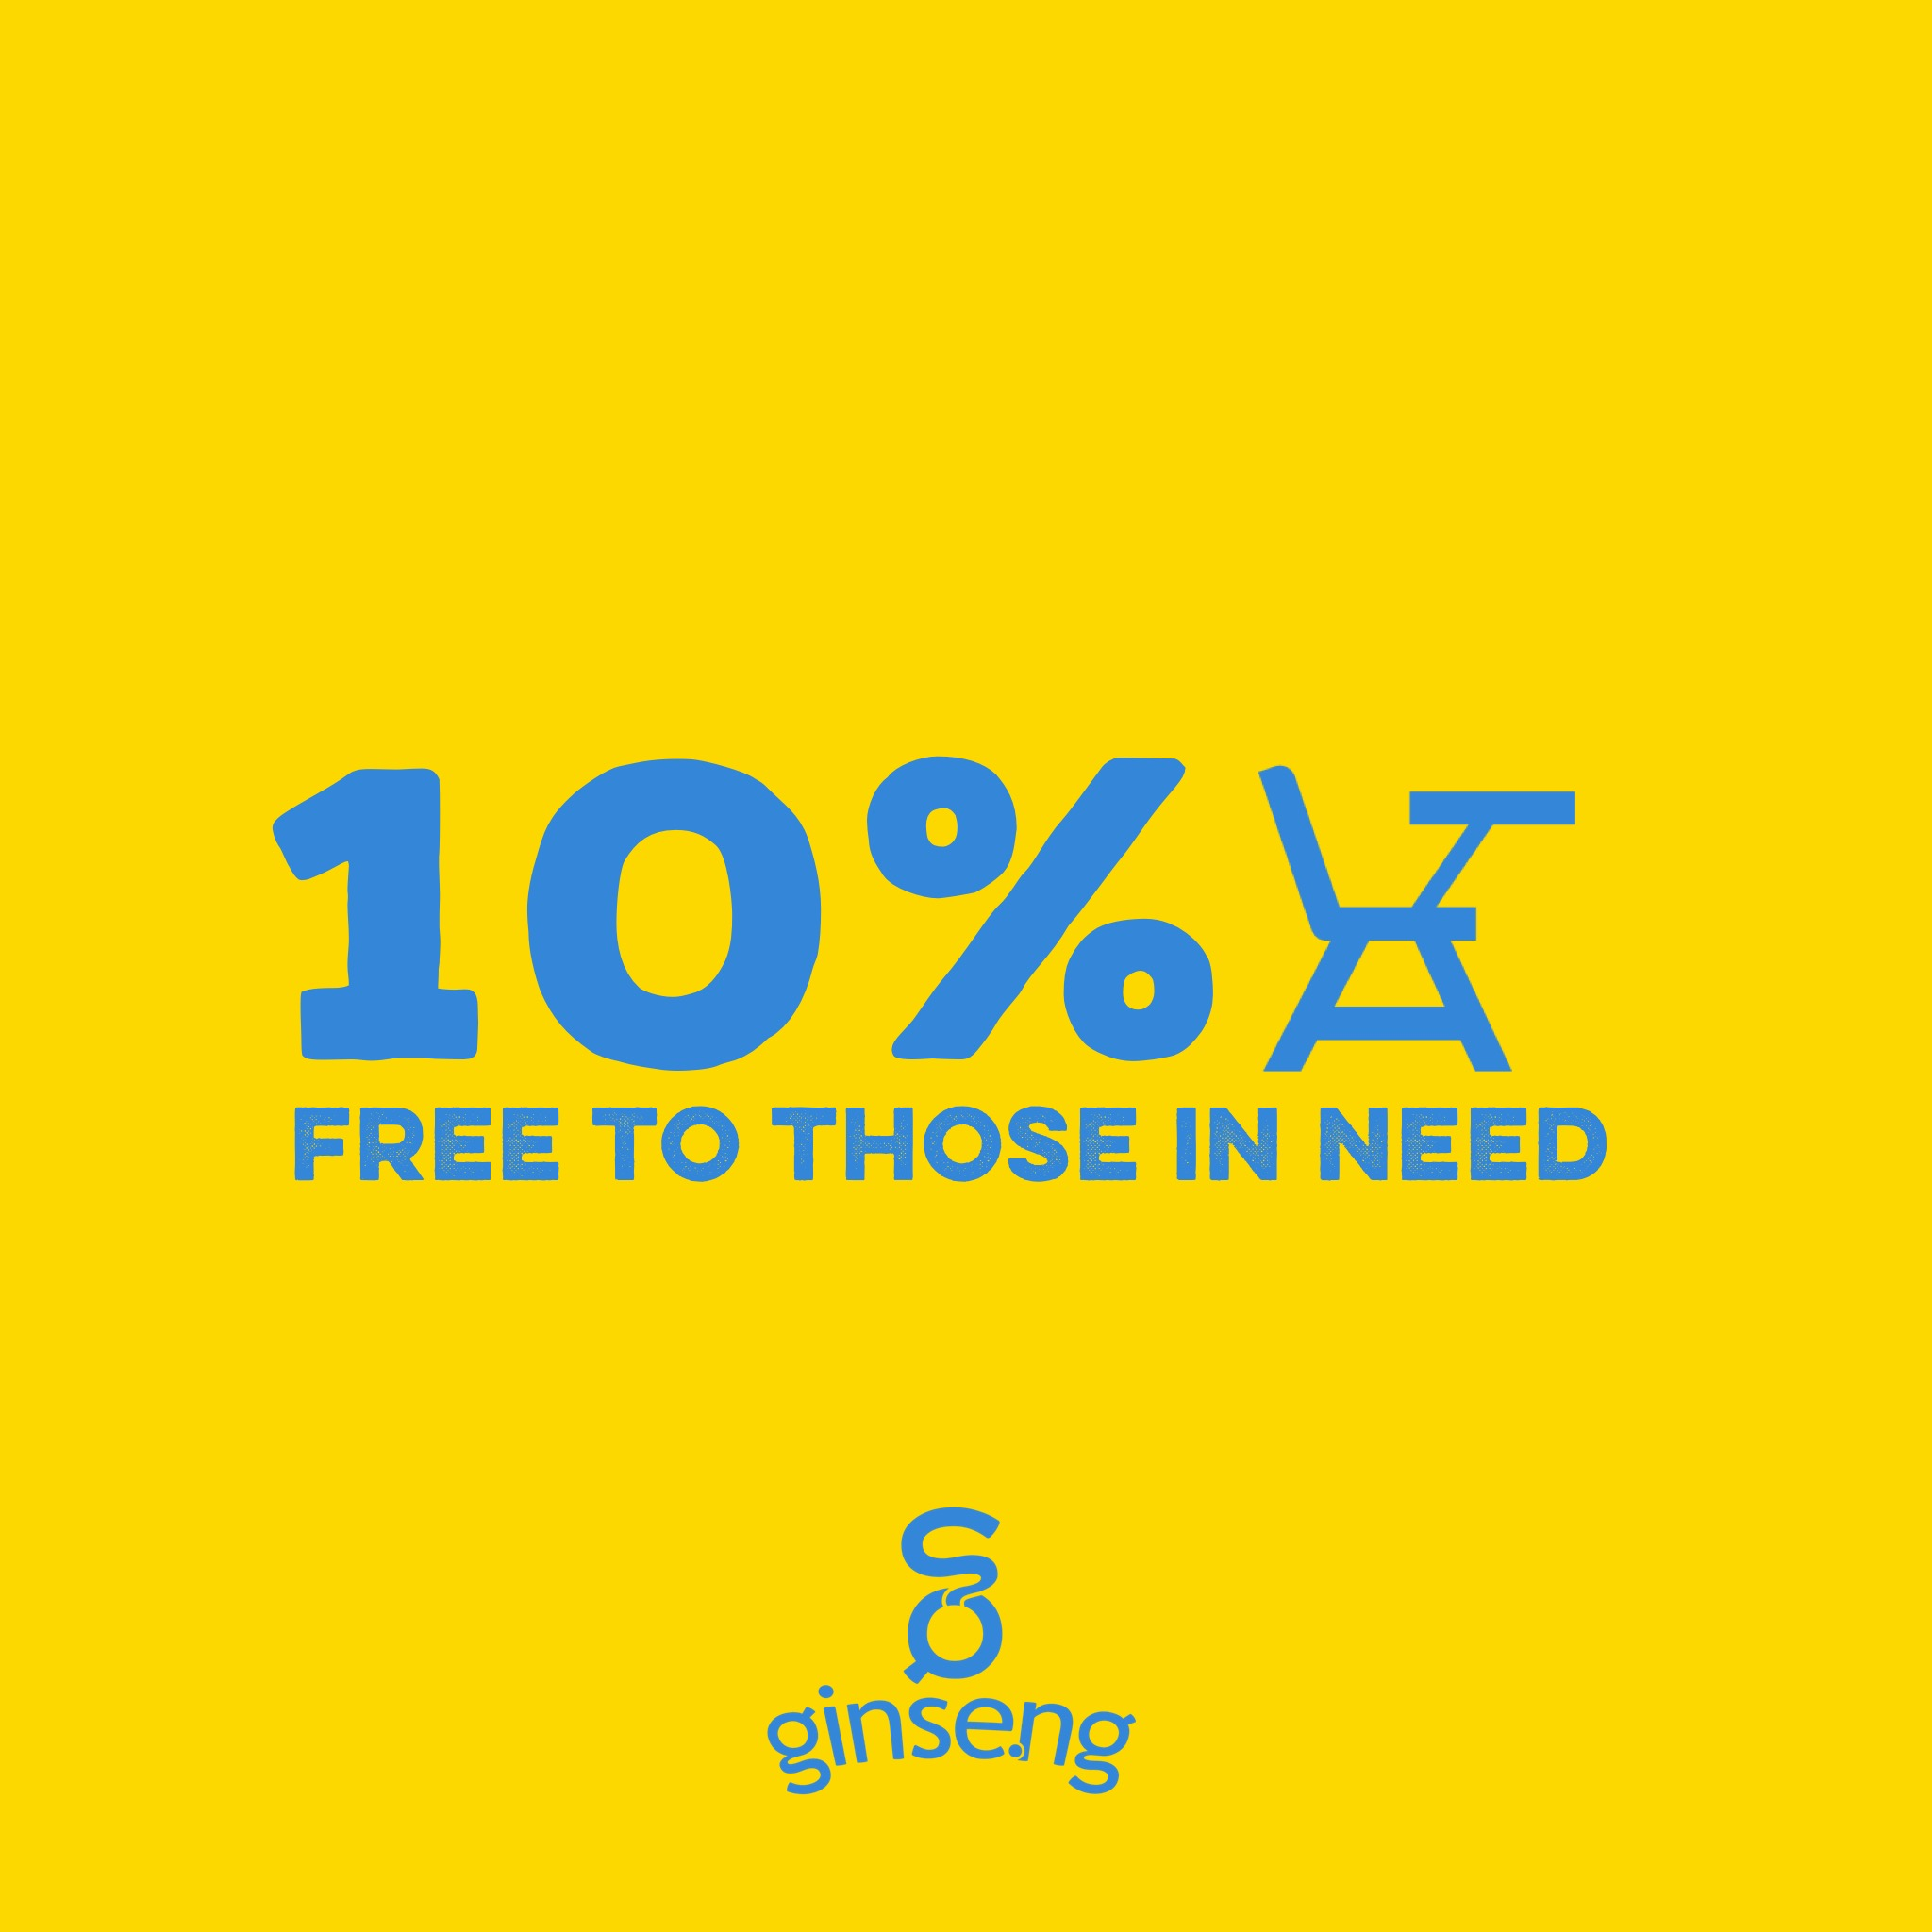 Social Enterprise: 10% Free to Those in Need